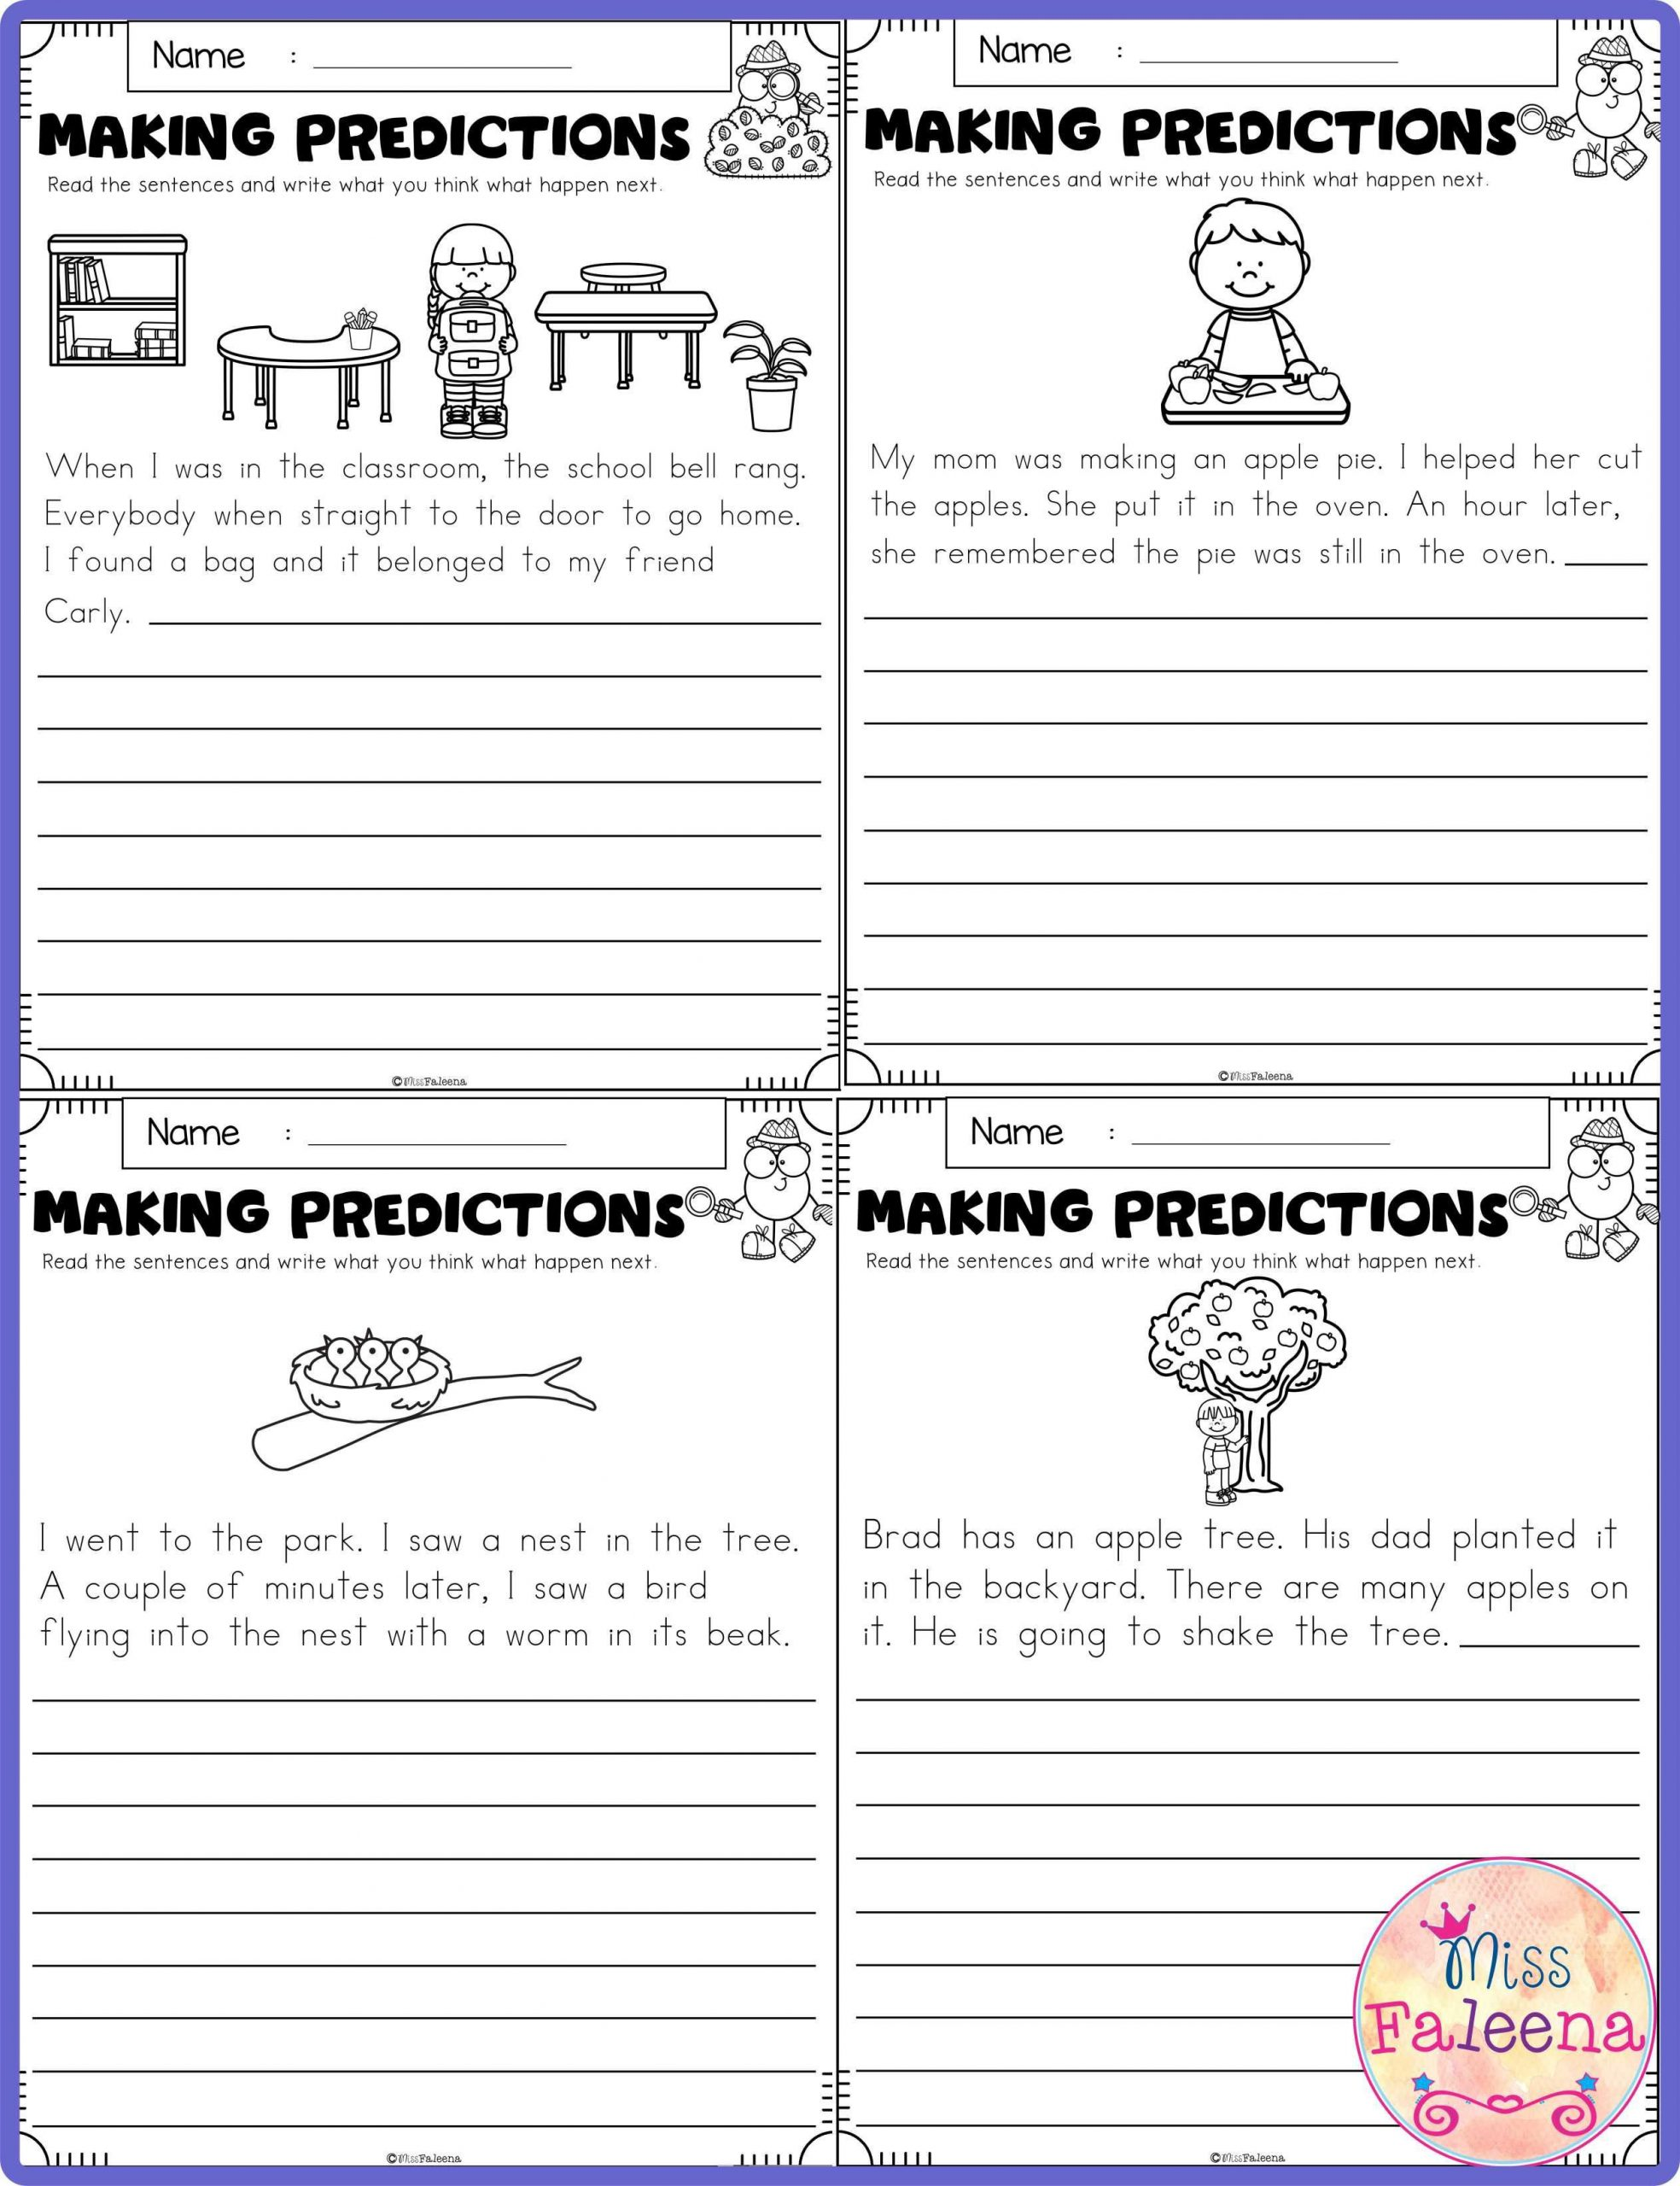 Prediction Worksheets for 3rd Grade September Making Predictions In 2020 with Images